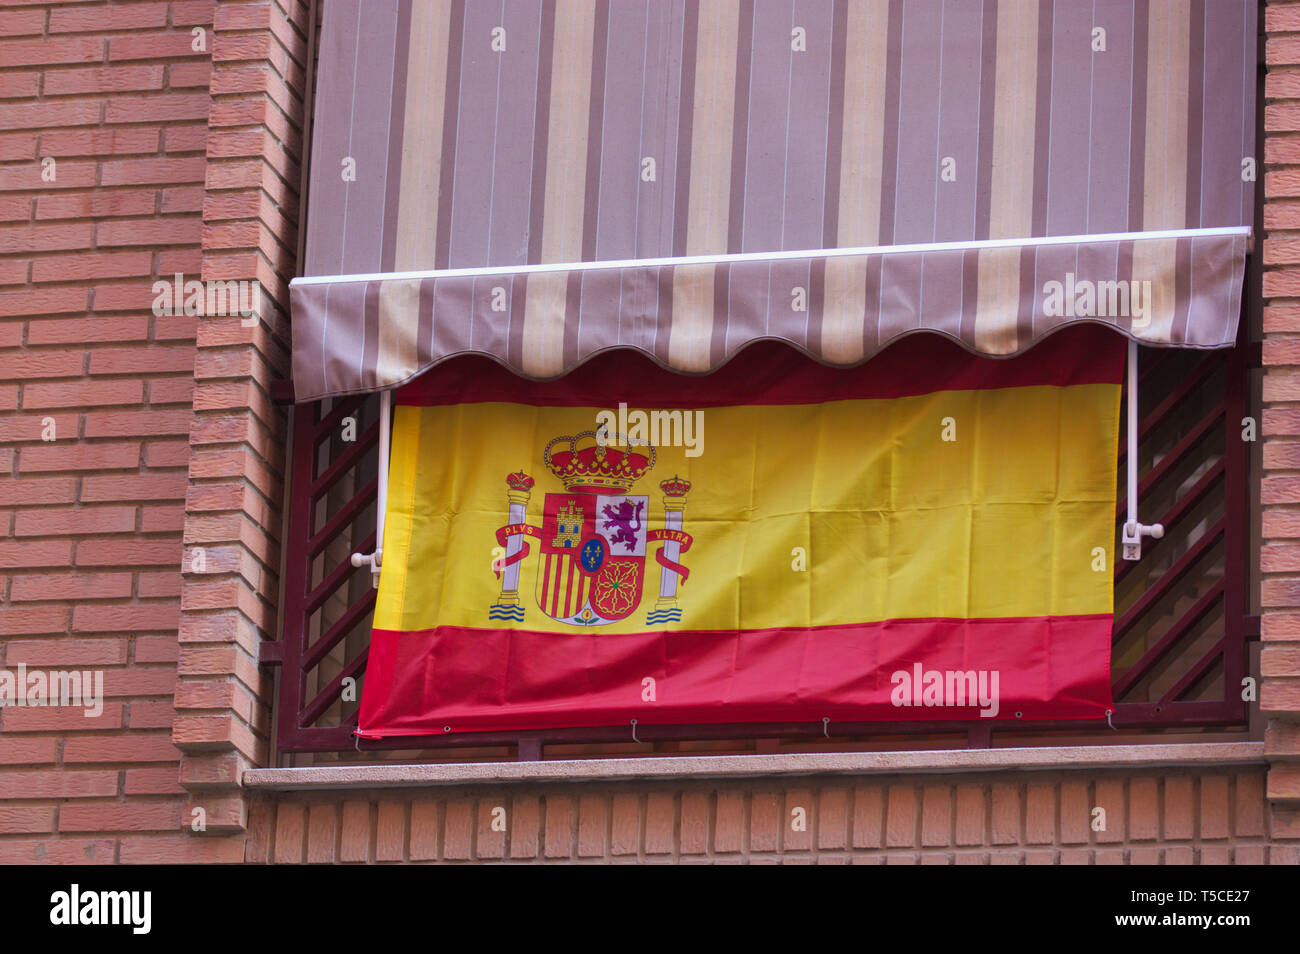 Spanish flag hanging from a balcony in a Spanish state city to indicate Spanish national patriotic fervor - Stock Image